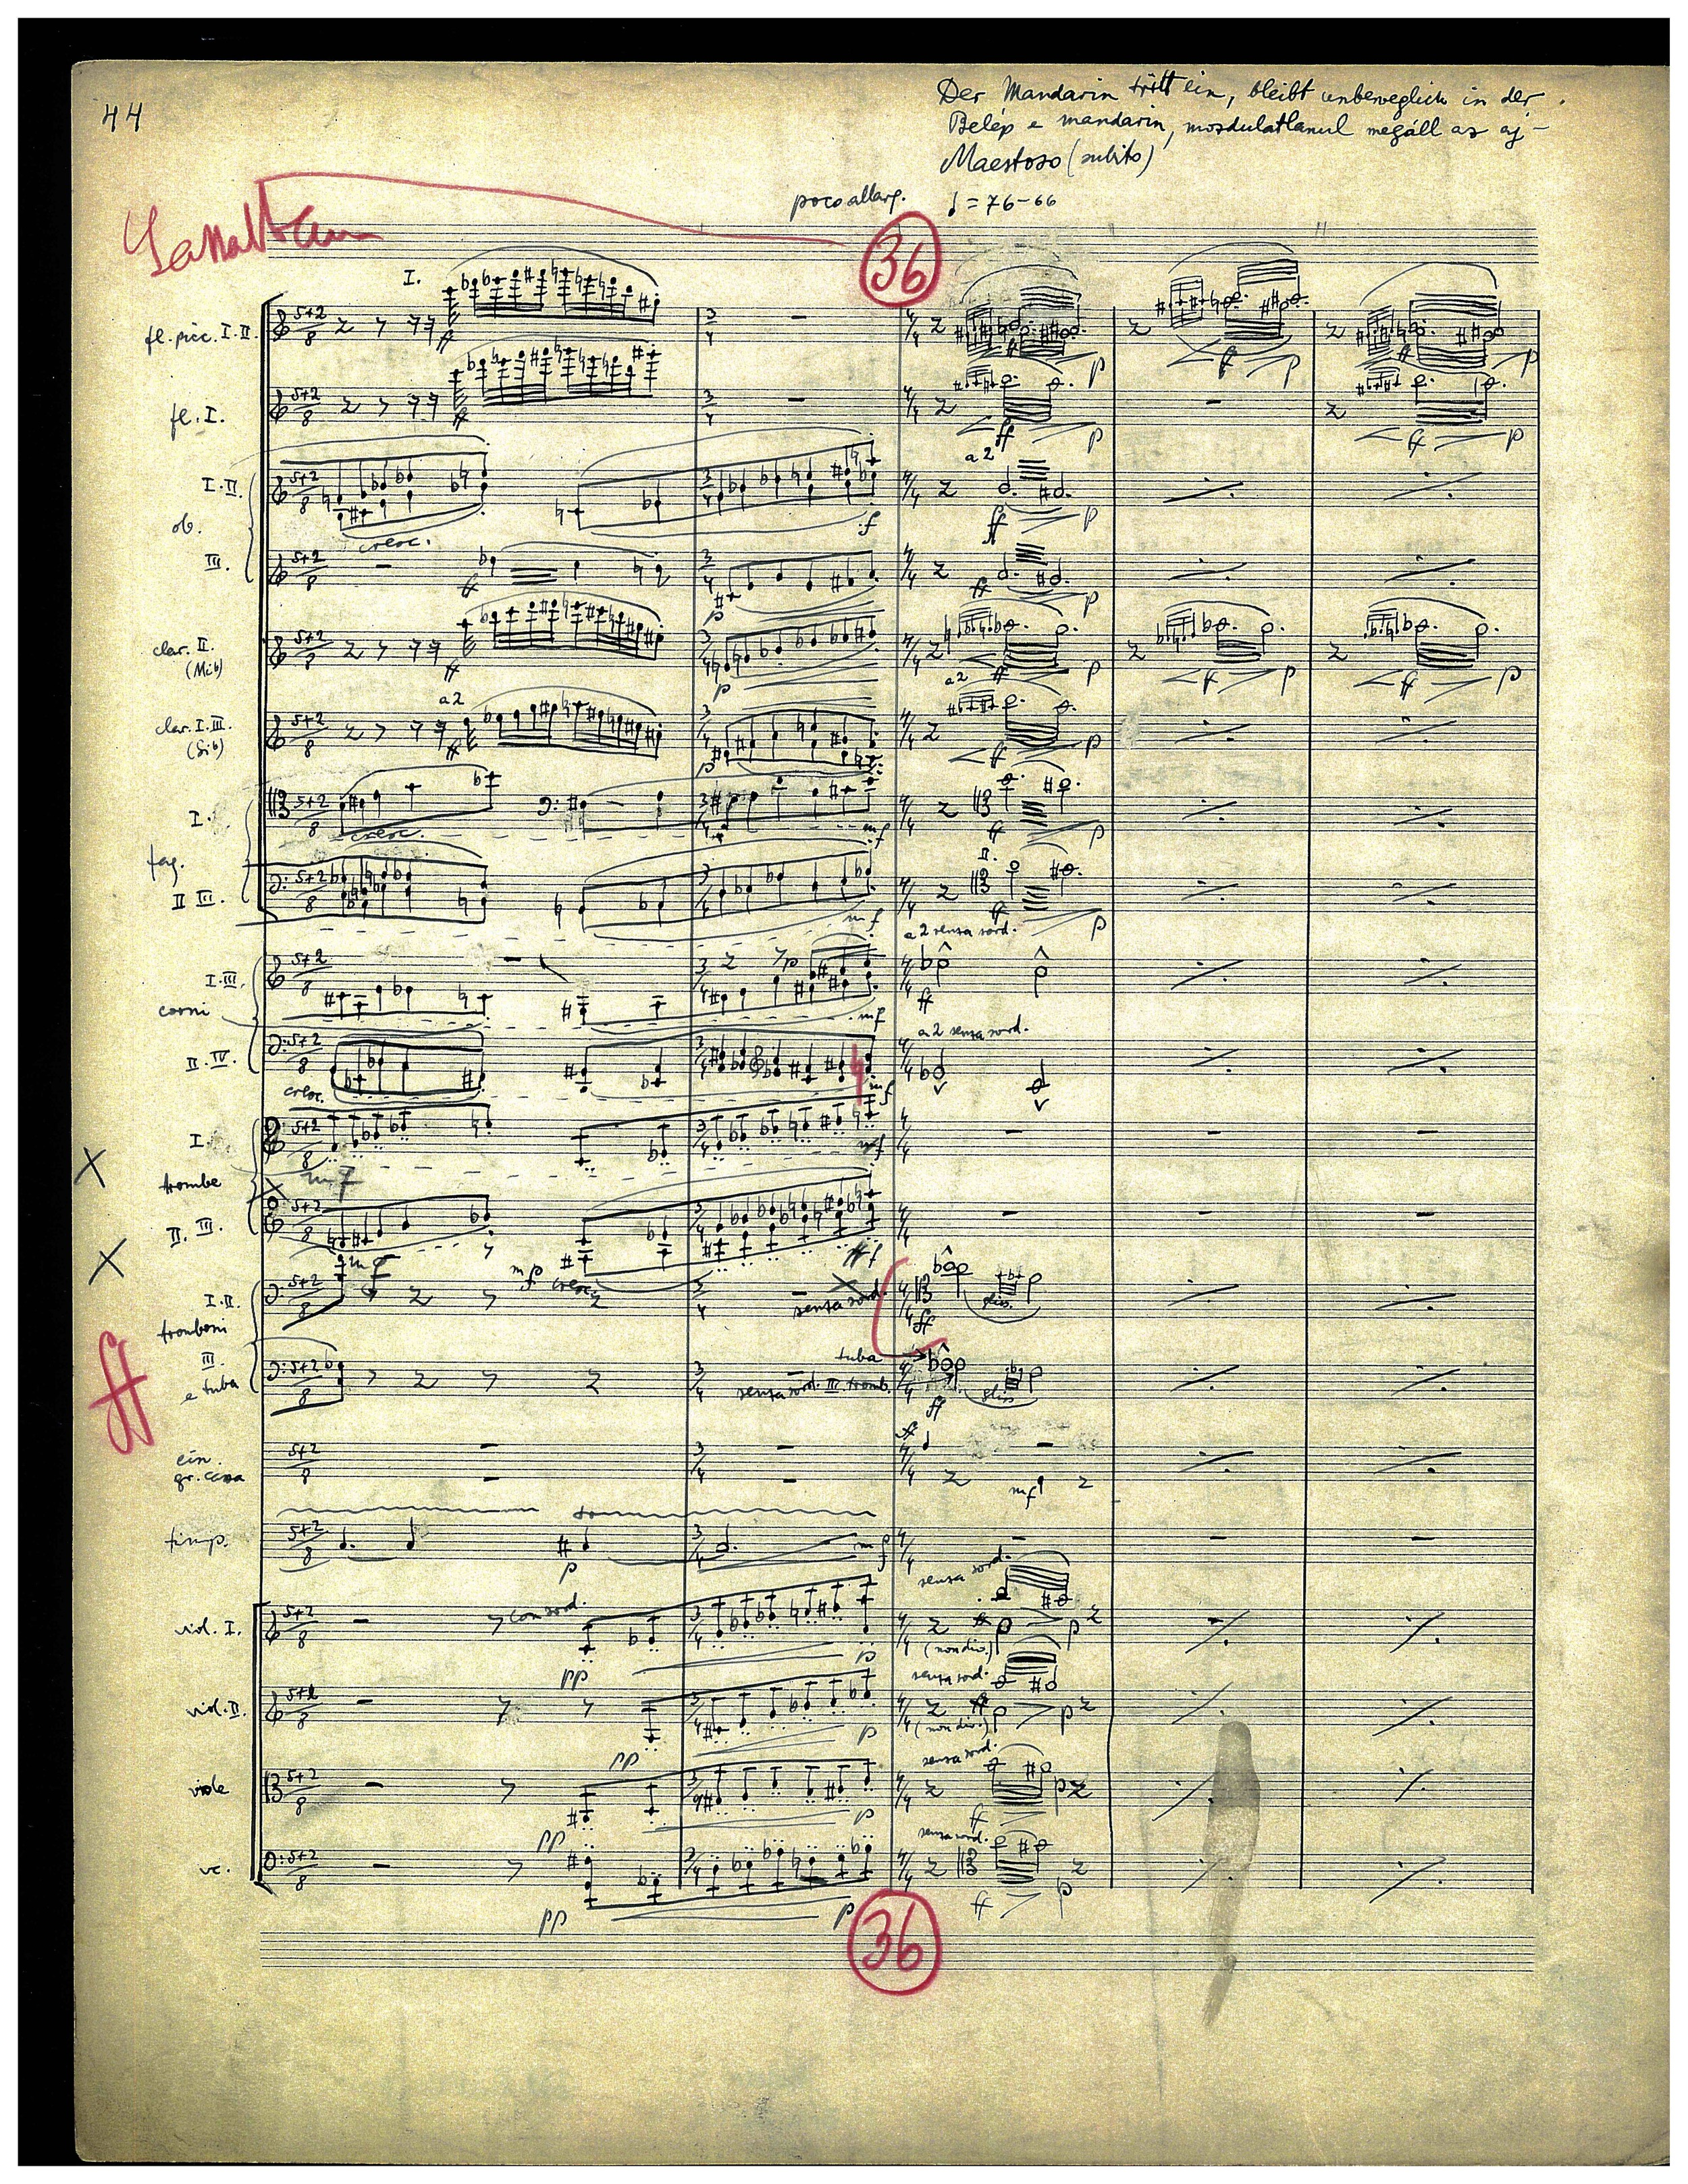 Courtesy of Peter Bartók/Bartók Estate